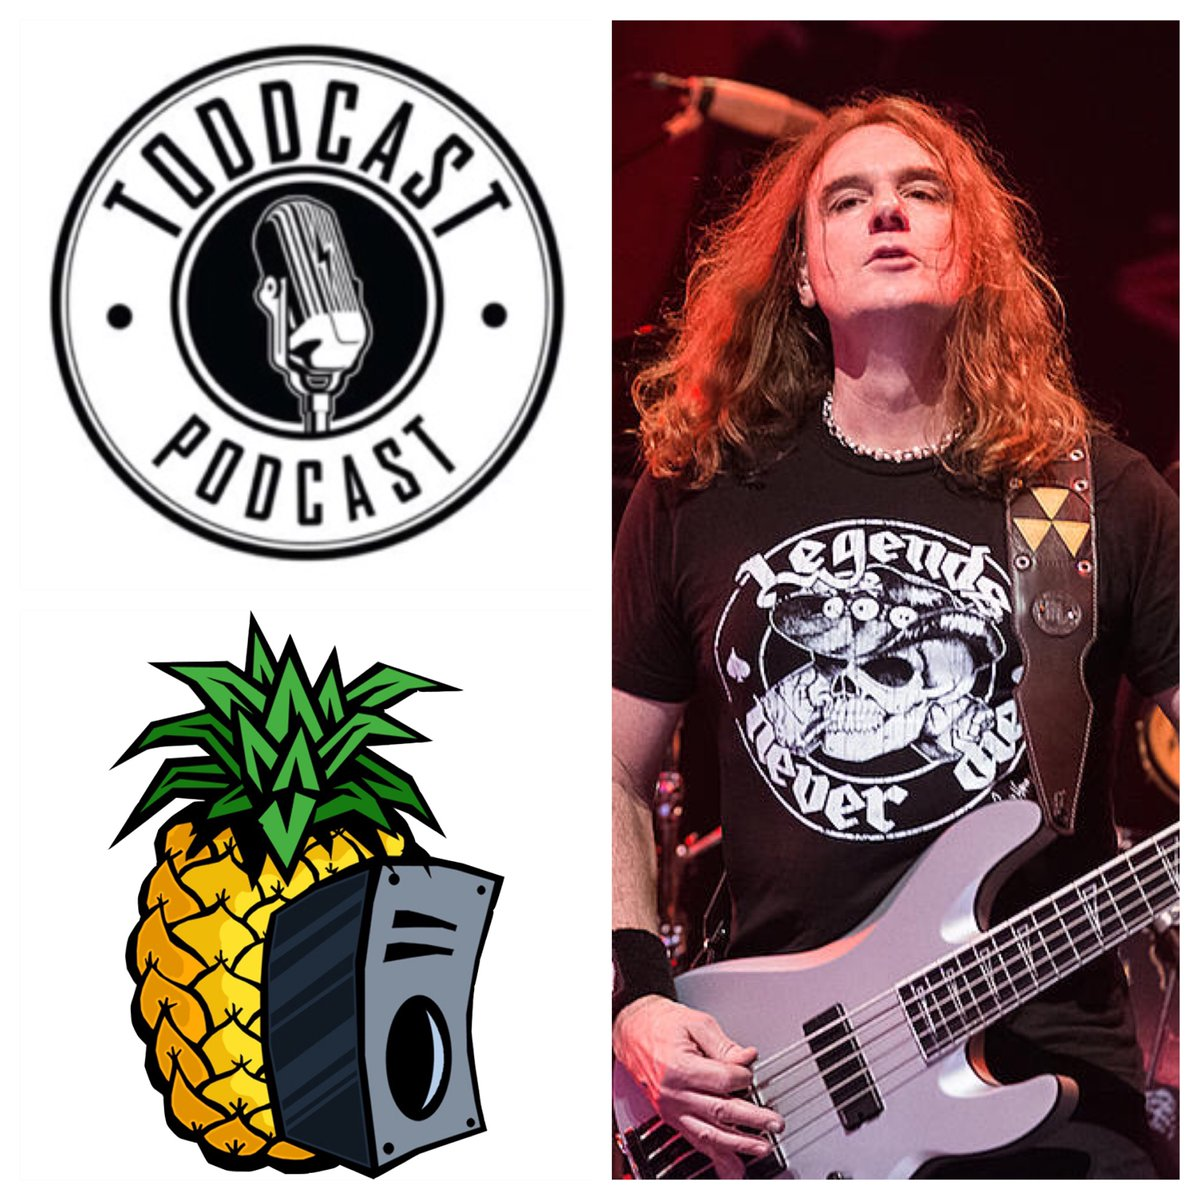 Listen to this 41 minute #podcast with#Megadeth bassist David Ellefson! We talked#KISS, #DannyMcBride shows, #nostalgia, #TheBeatles& somuchmore!    * Musical guestvisits are powered by #PineappleSoundrecording and mixing services in #Langley!